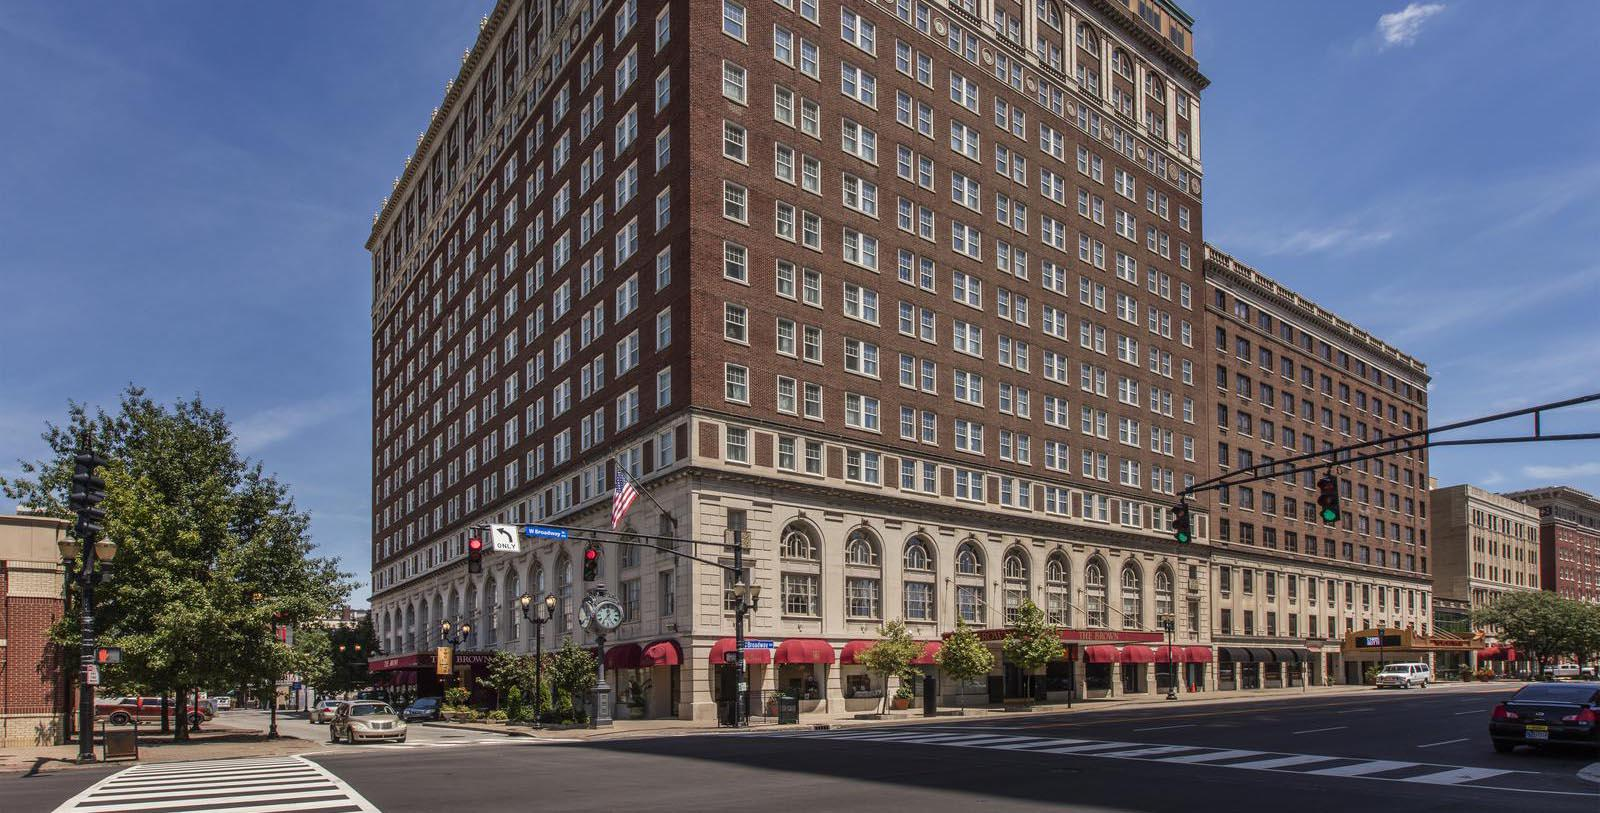 Image of Facade of The Brown Hotel, 1923, Member of Historic Hotels of America, in Louisville, Kentucky, Special Offers, Discounted Rates, Families, Romantic Escape, Honeymoons, Anniversaries, Reunions